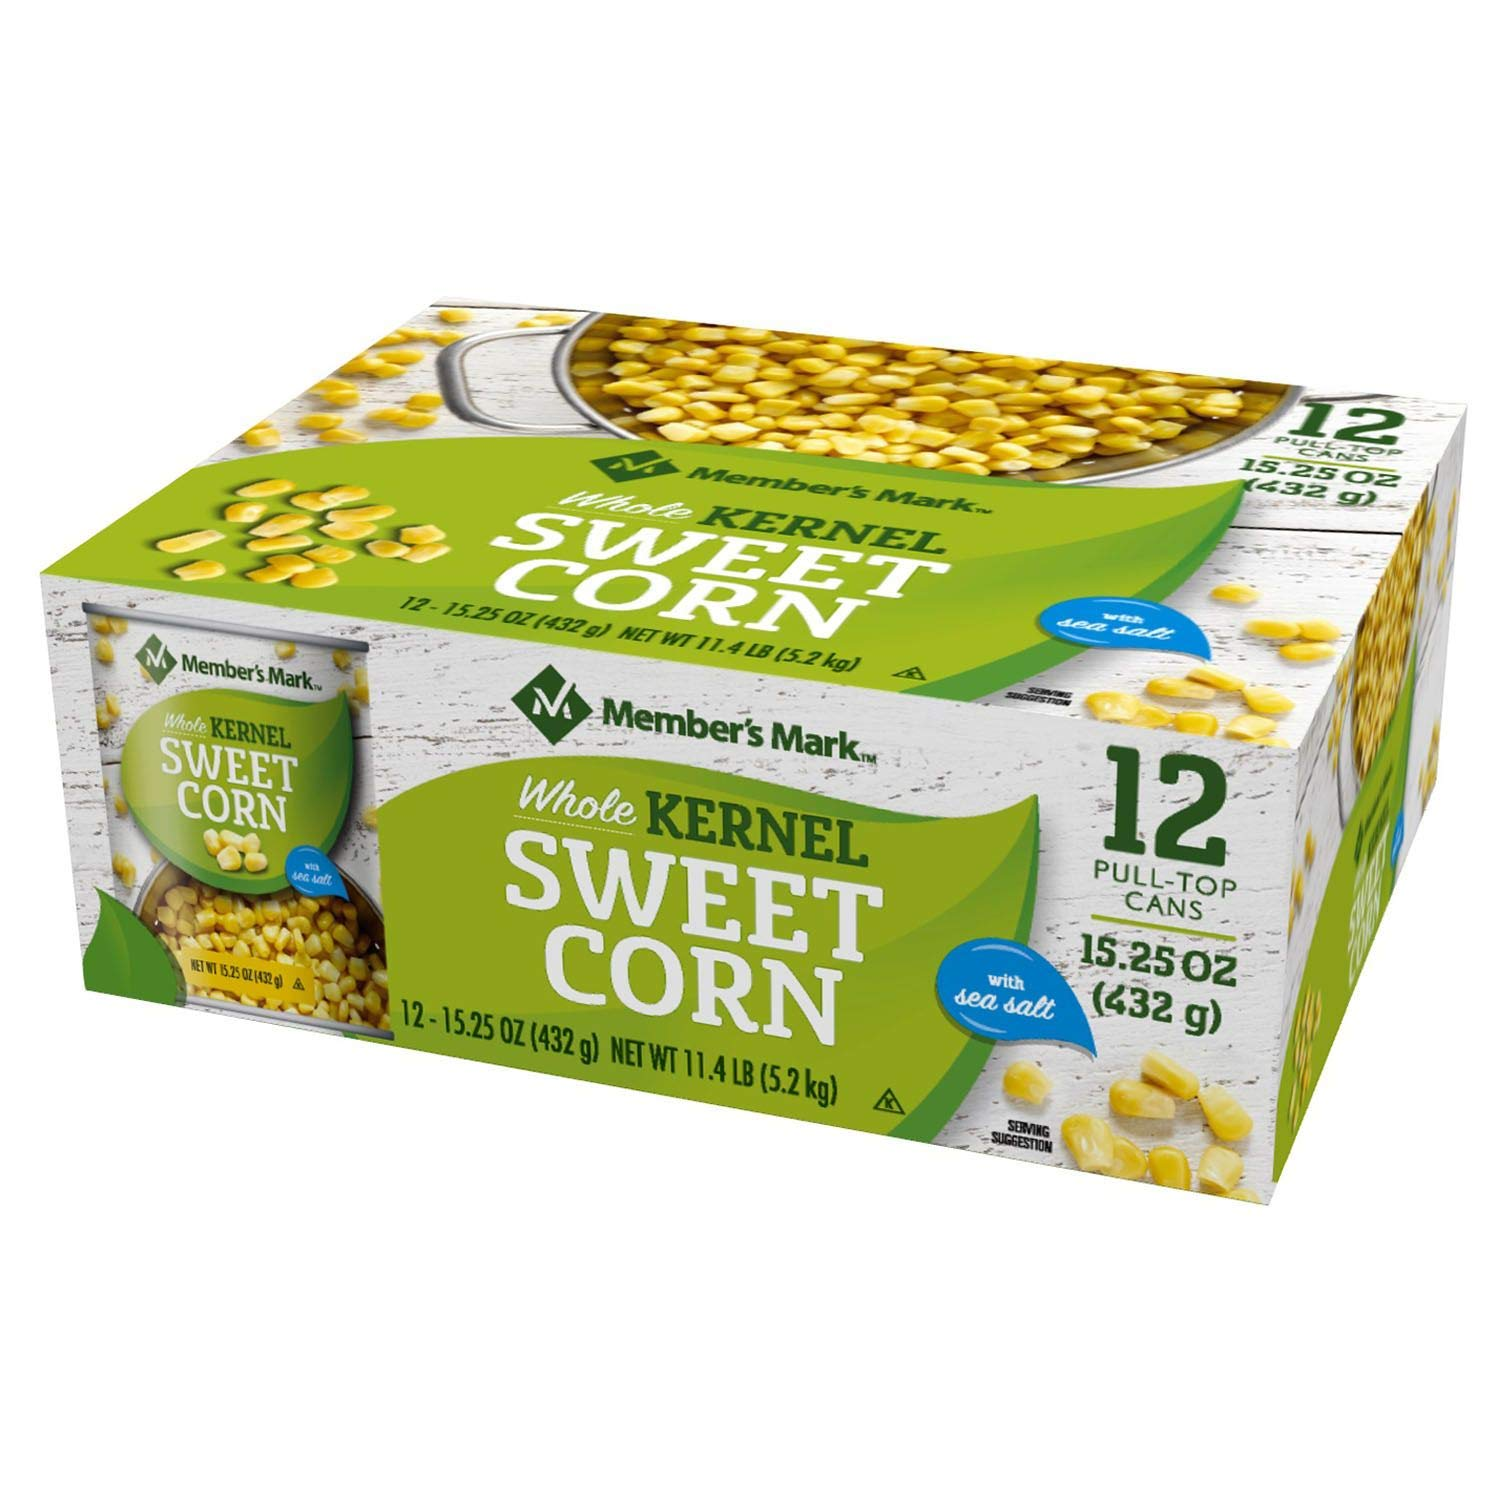 Member's Mark Whole Kernel Corn 15.25 oz, 12 pk. (pack of 4) A1